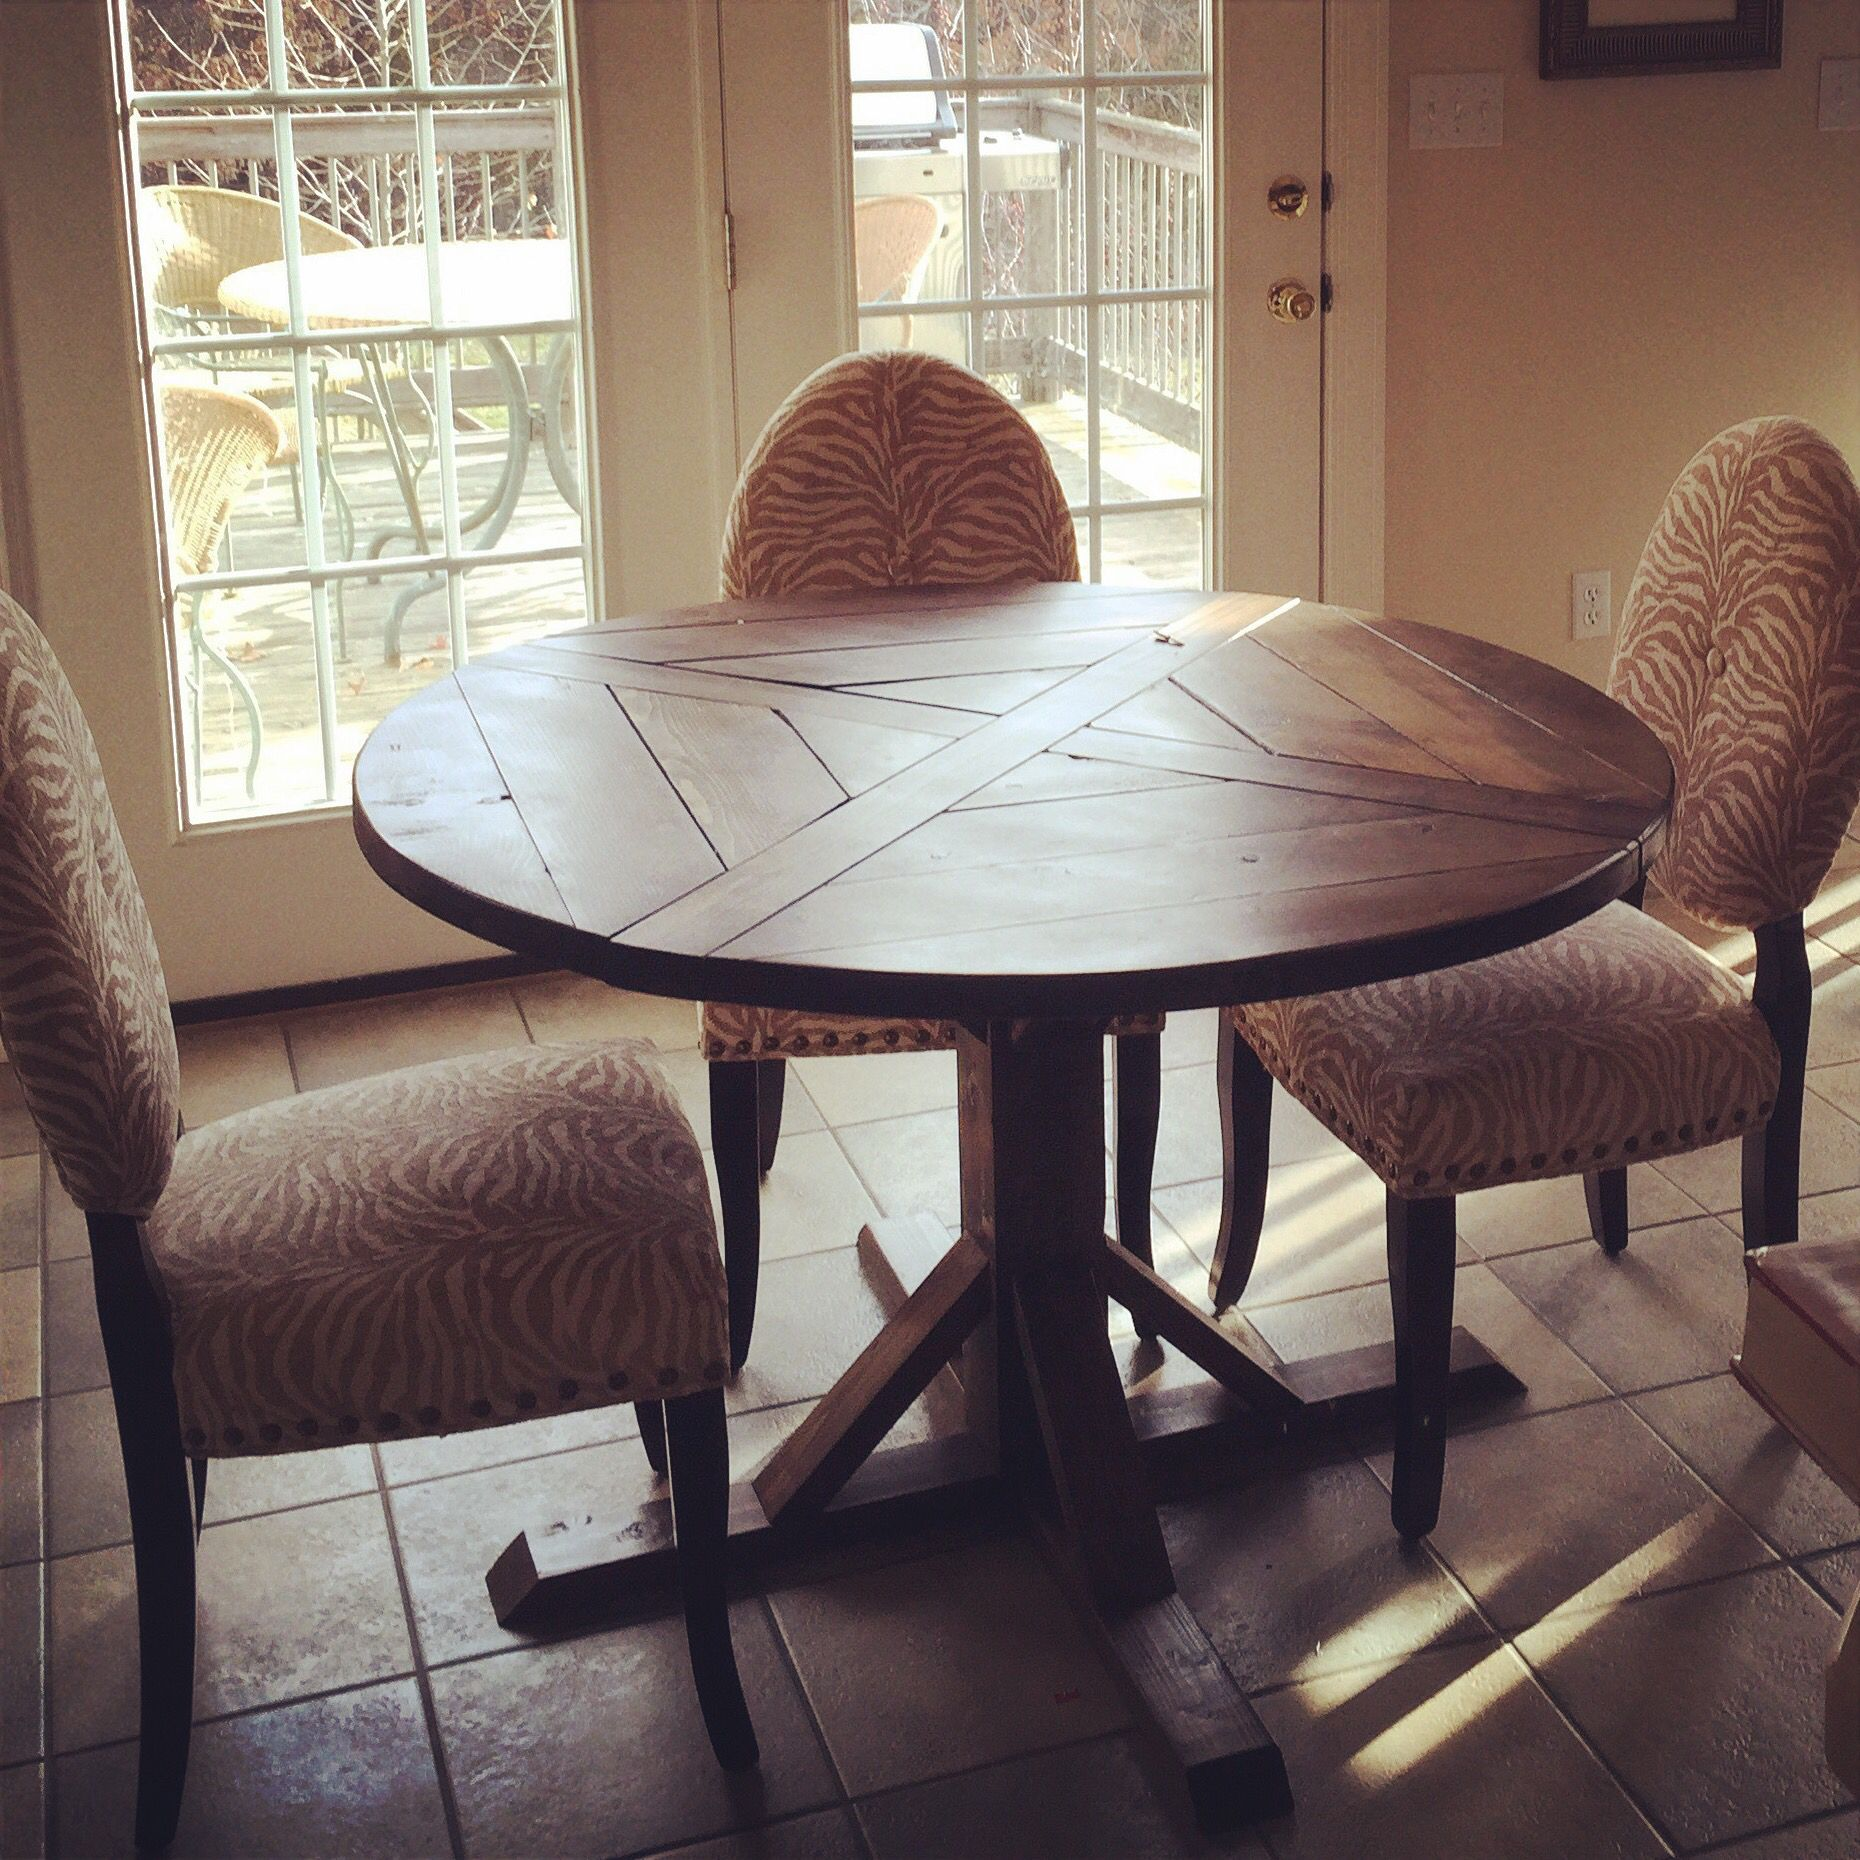 a 48   ashley round farmhouse table in dark walnut  a 48   ashley round farmhouse table in dark walnut    kitchen      rh   pinterest com